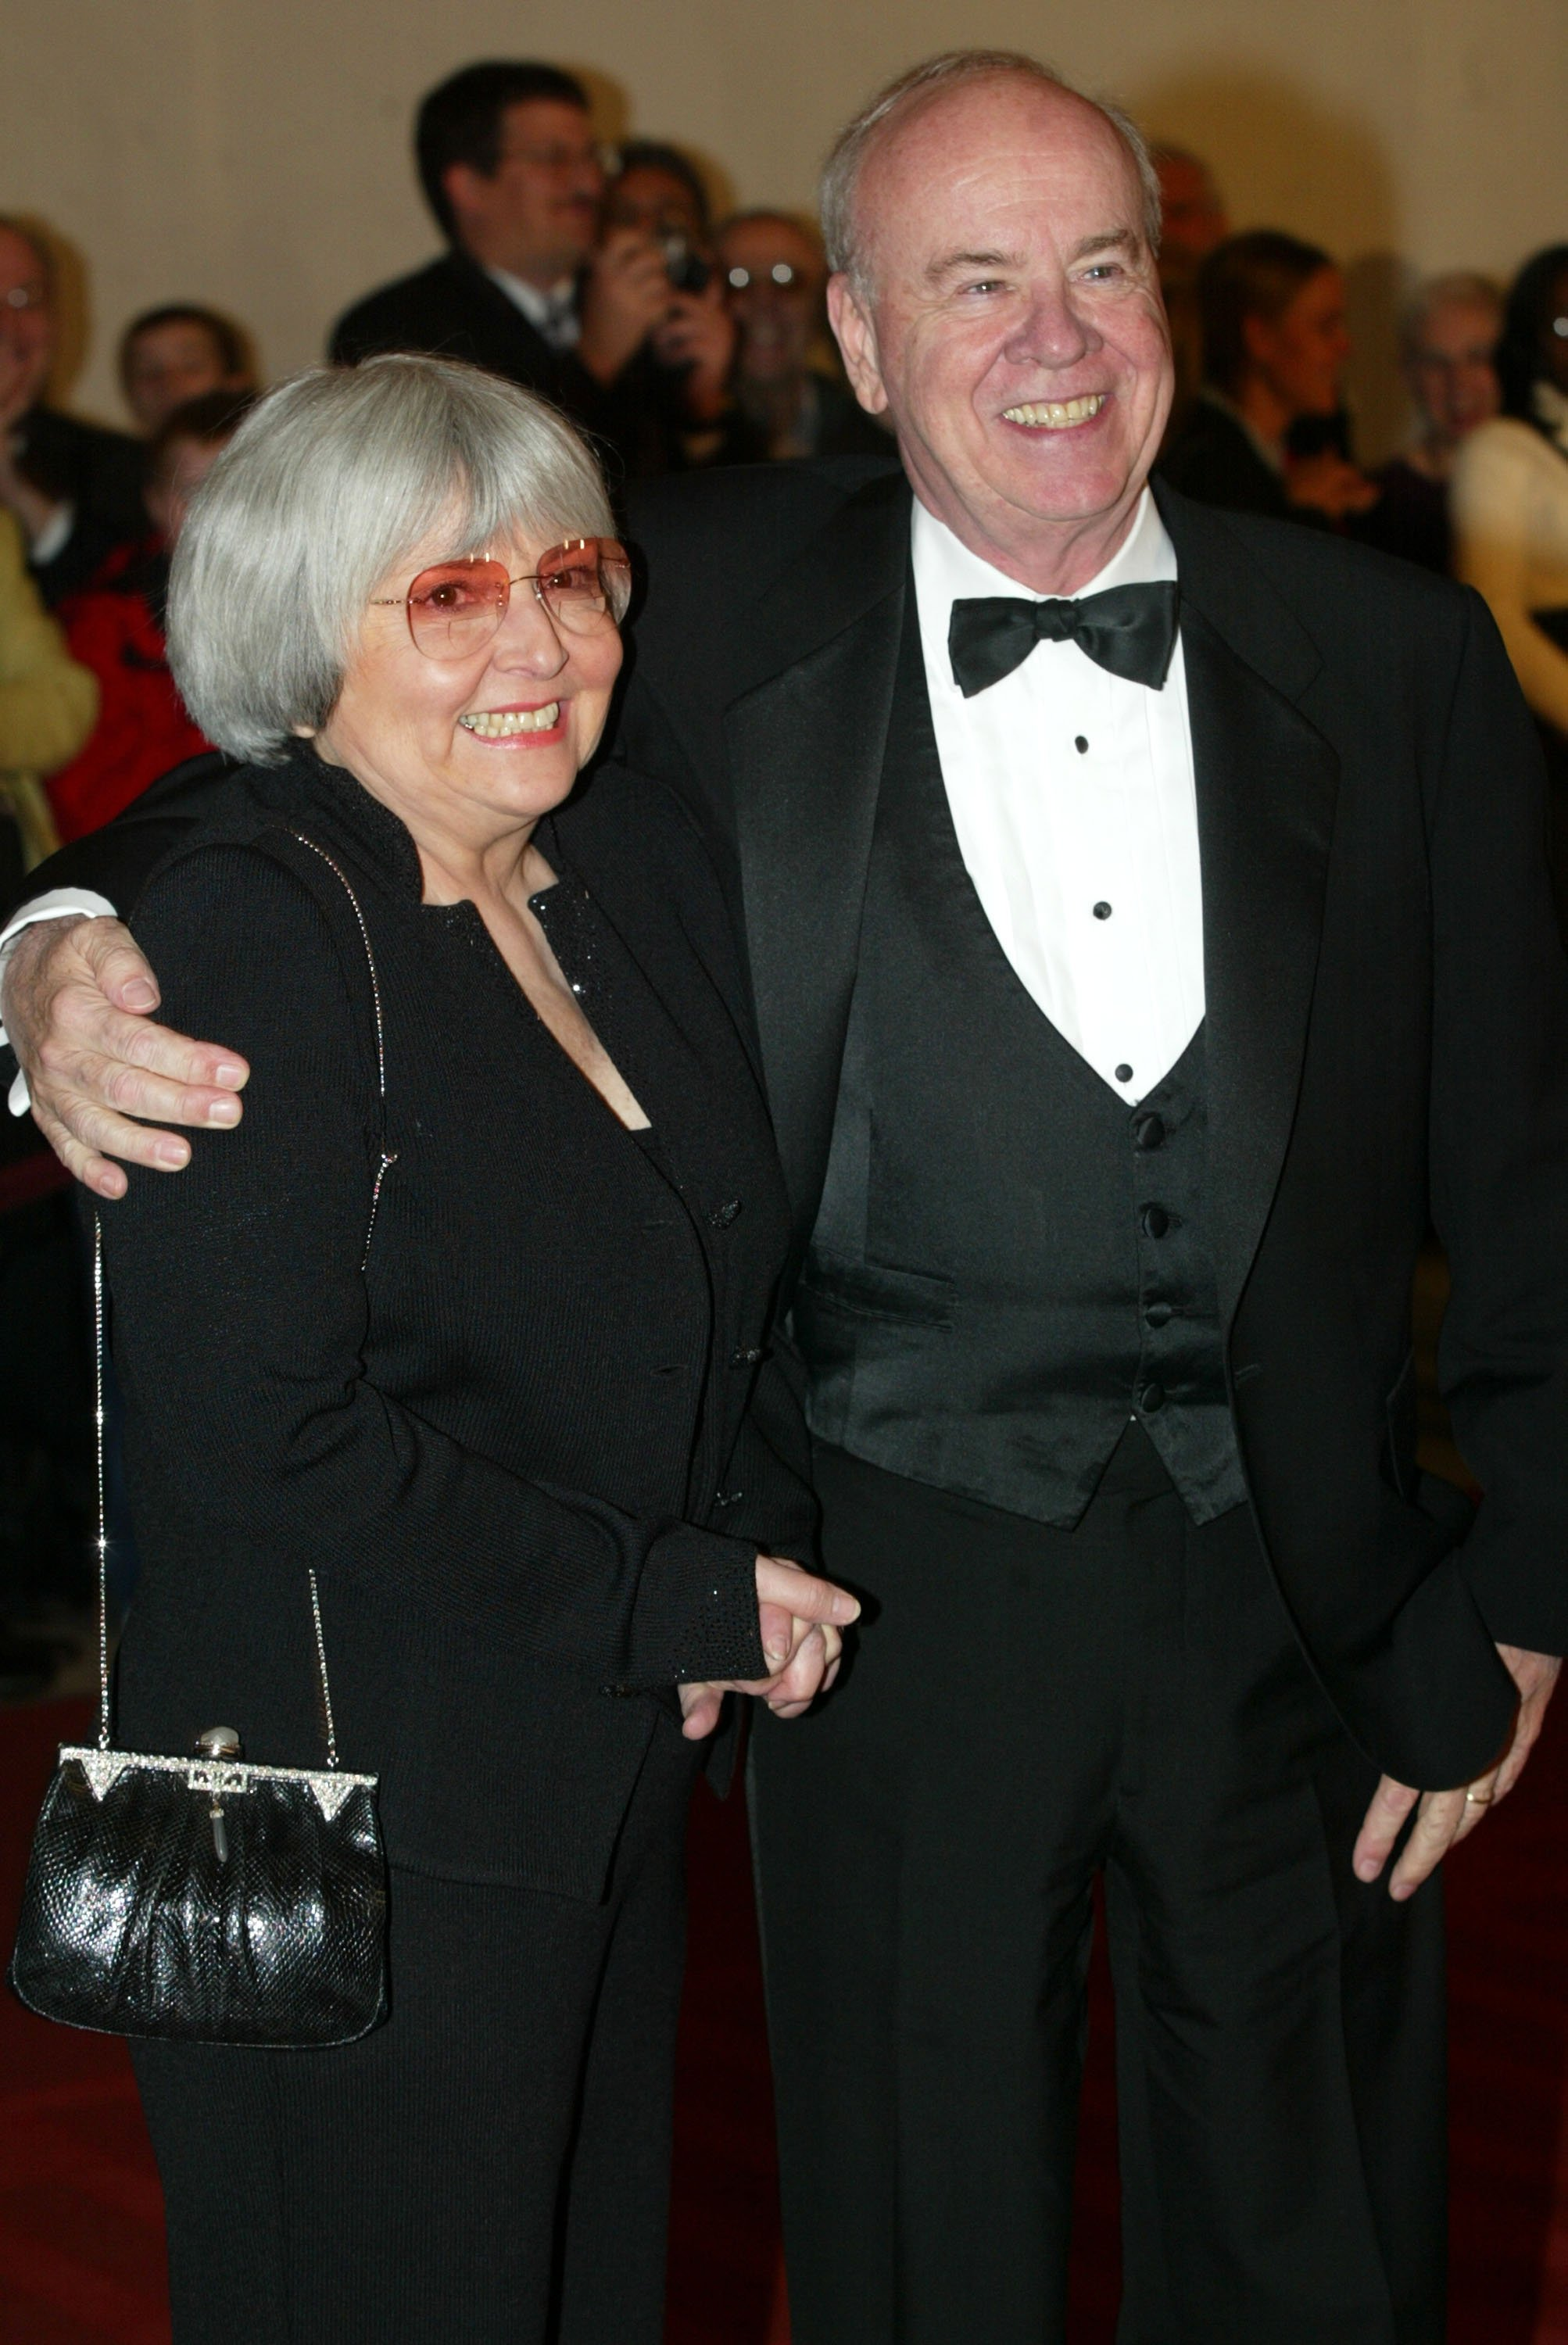 Tim Conway and his wife Charlene at the 5th Annual Kennedy Center Mark Twain Prize presentation ceremony October 29, 2002 | Source: Getty Images